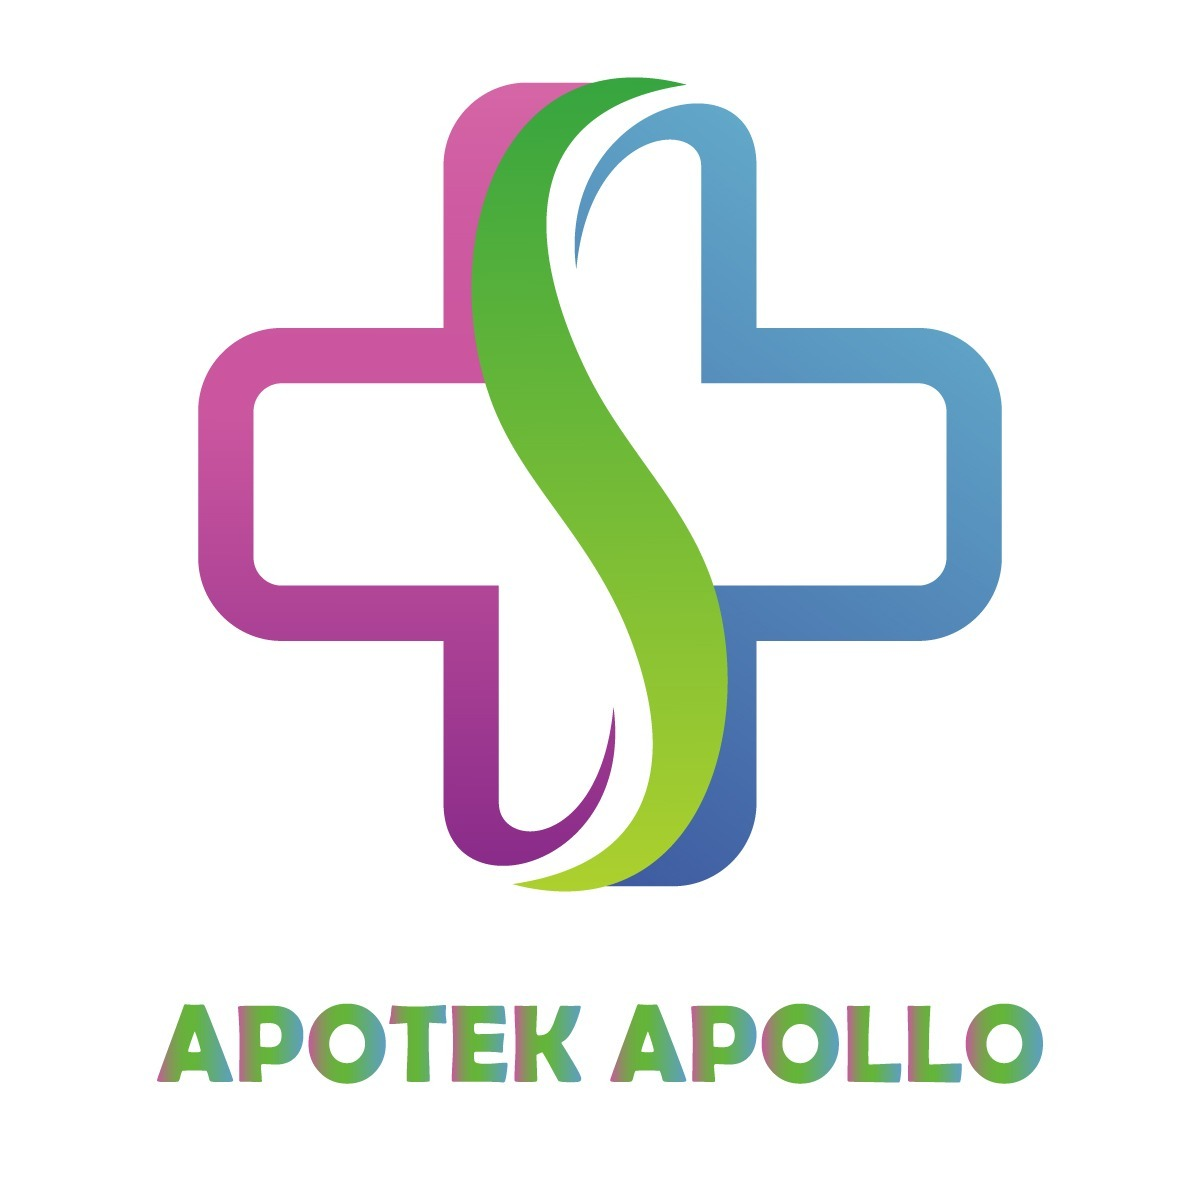 Apotek Apollo